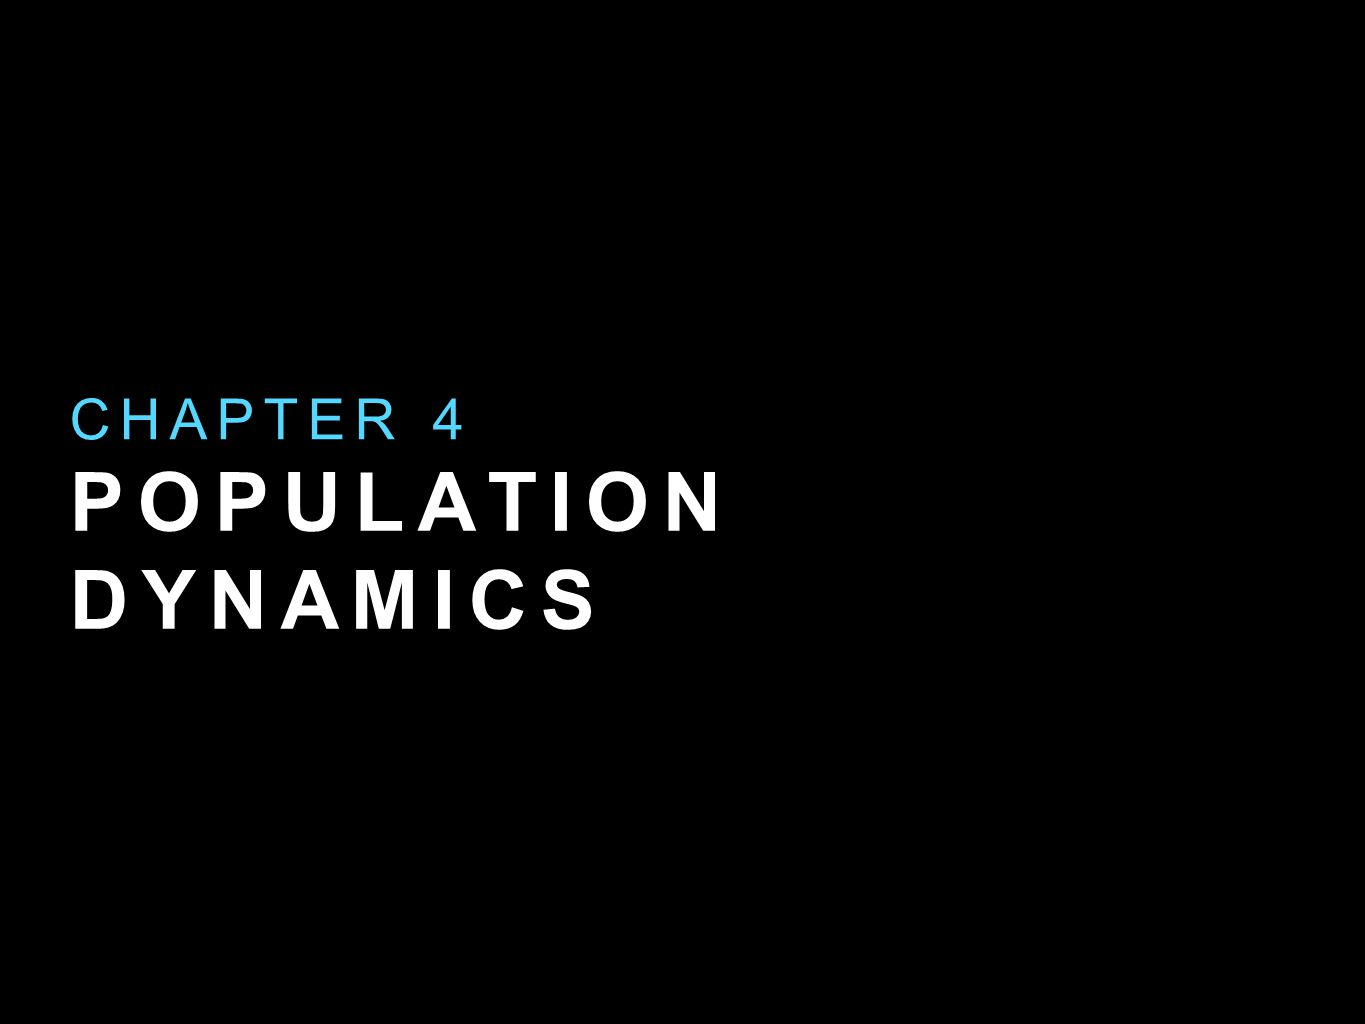 POPULATION DYNAMICS CHAPTER 4